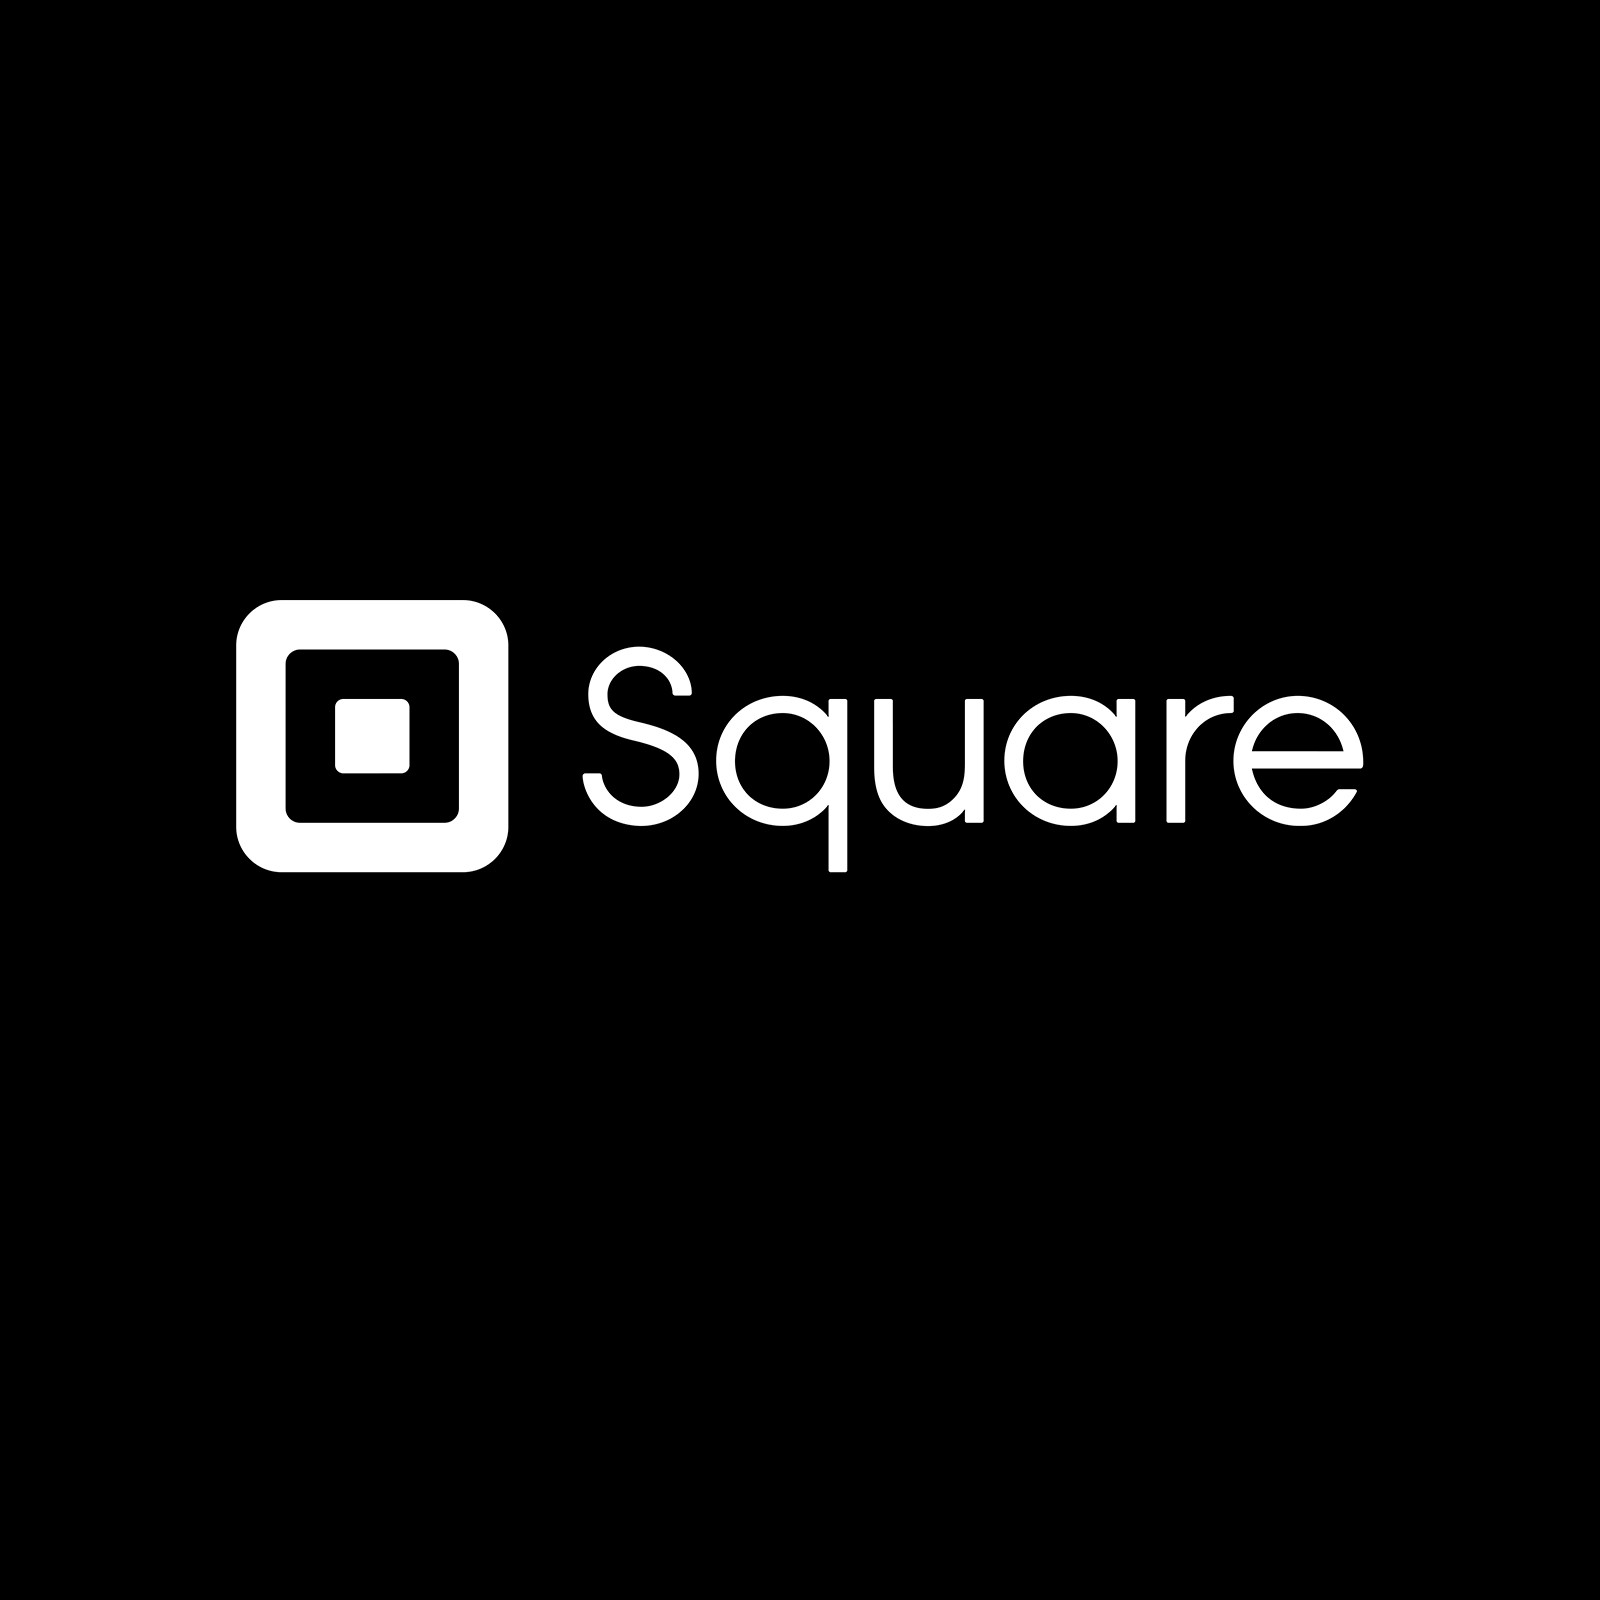 Square invests $50 million into Bitcoin